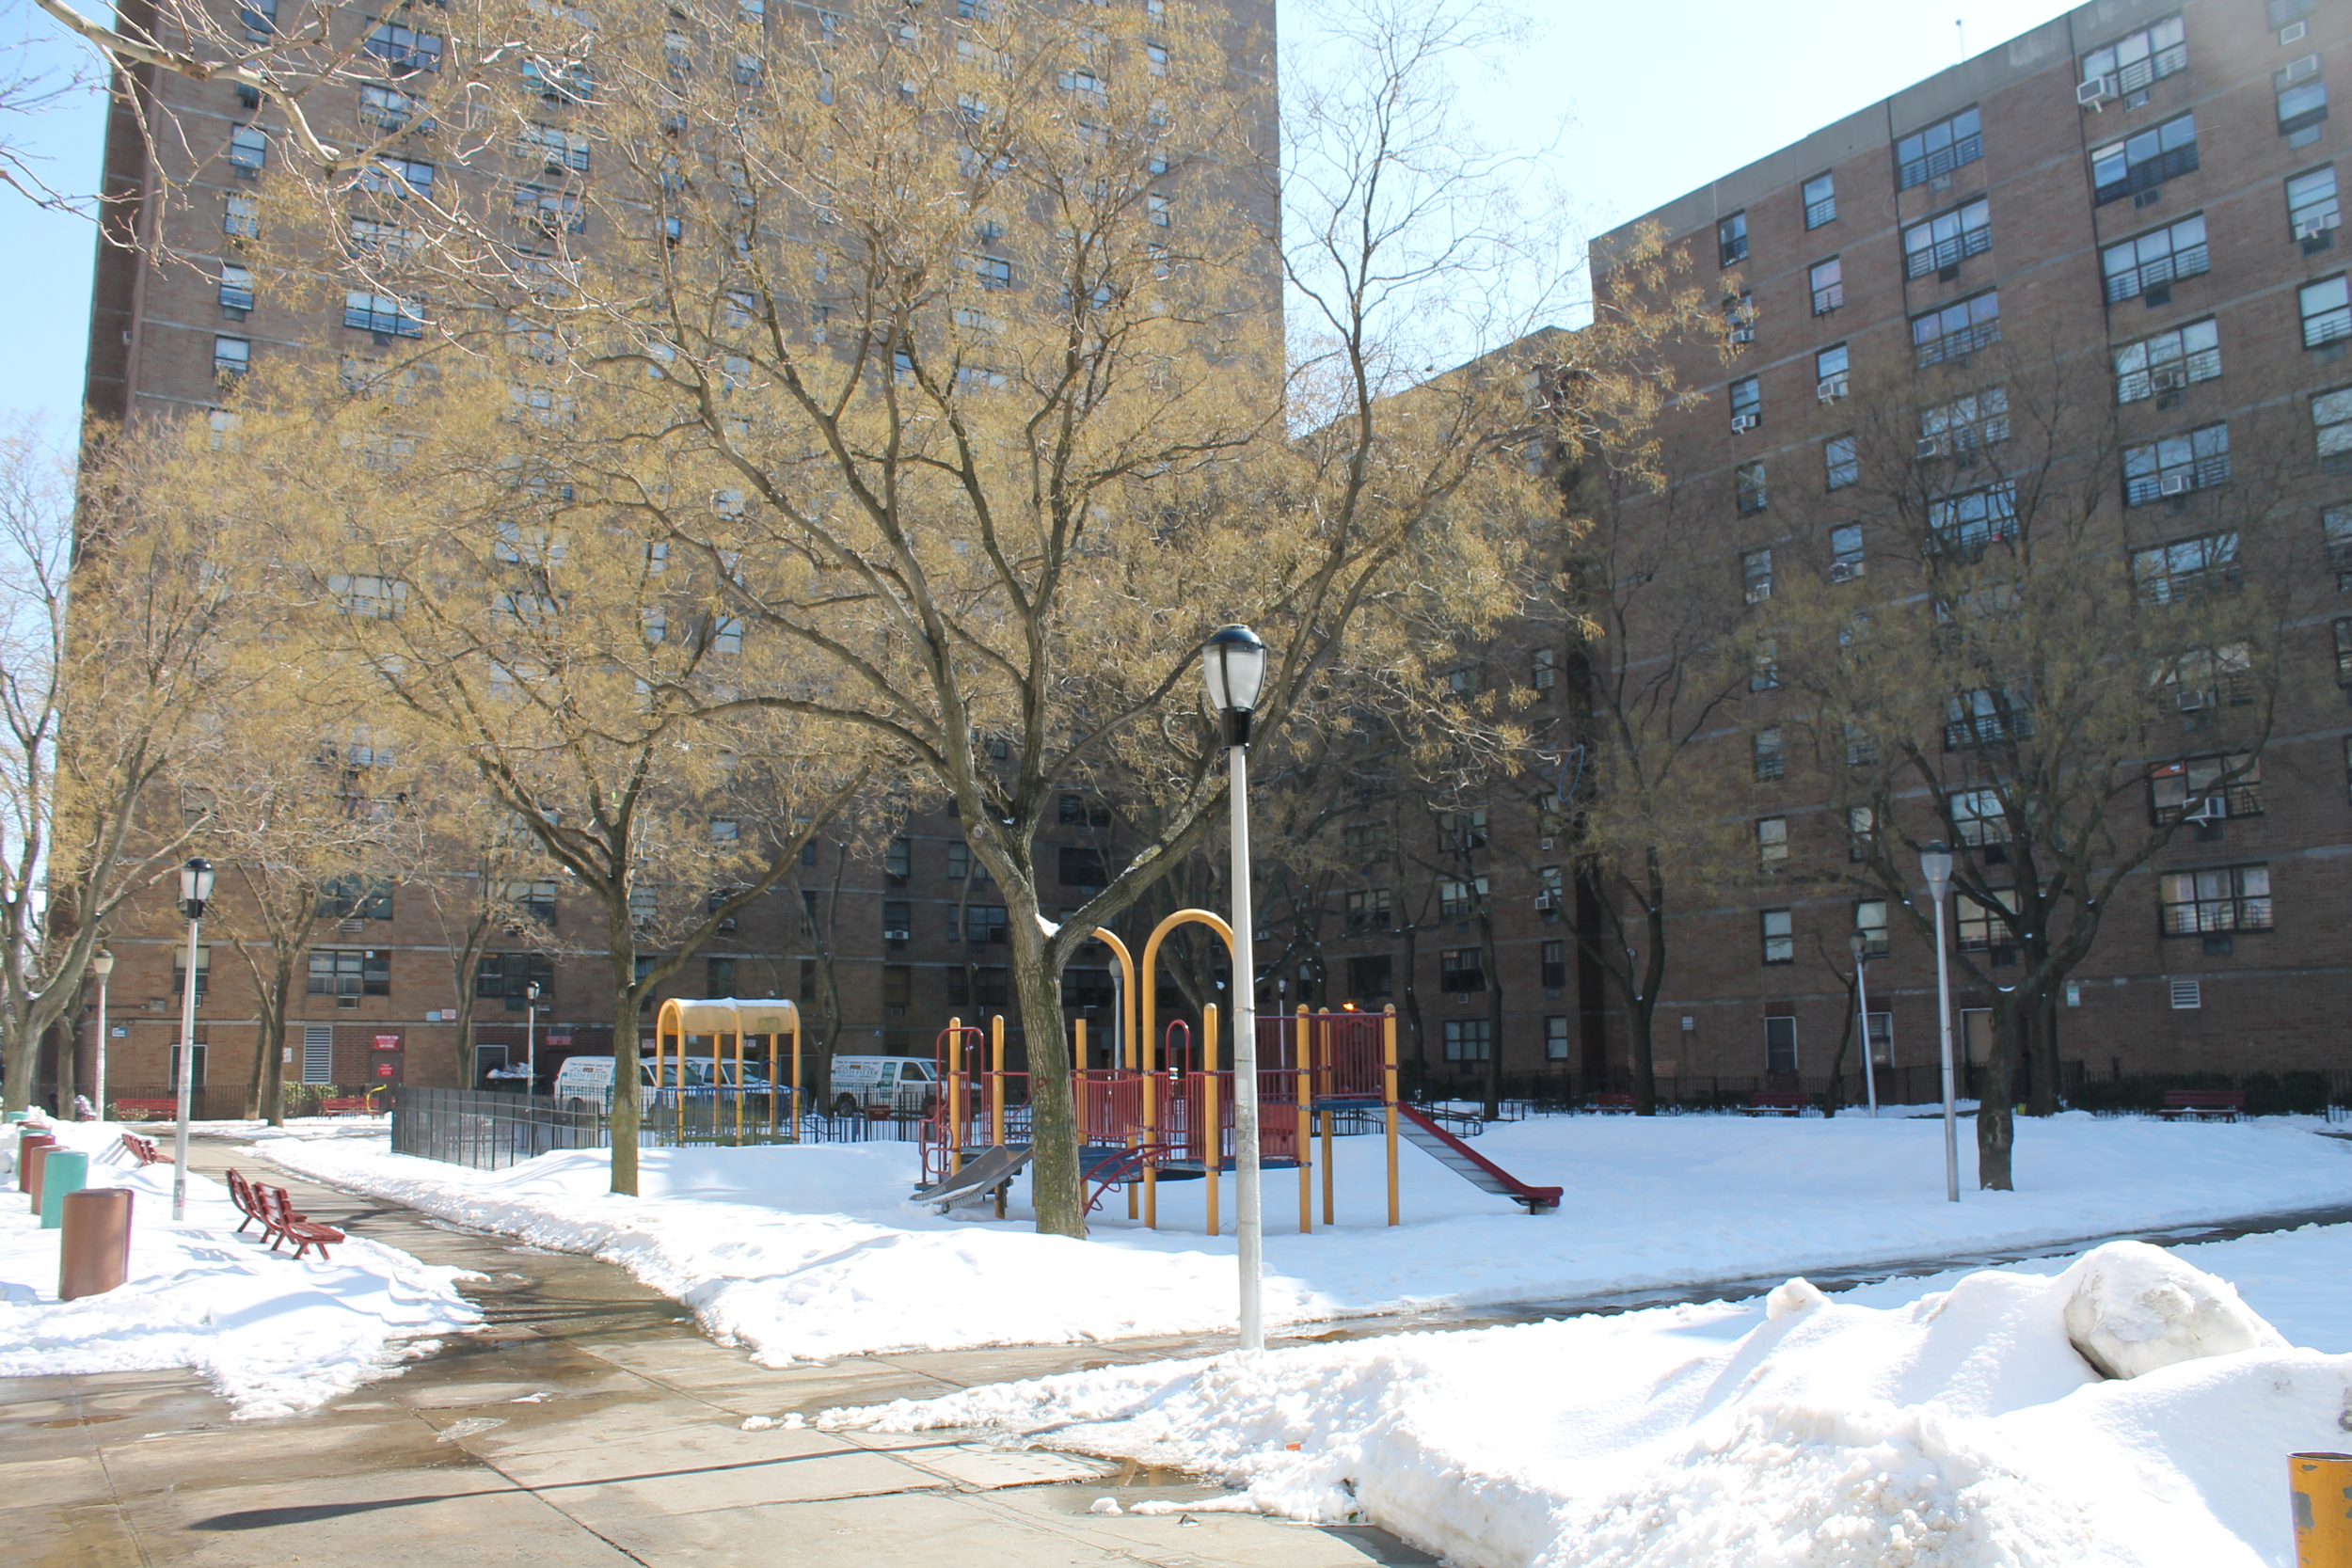 A view of the backside of 205 Avenue C, showing the park in the foreground and the parking lot in the backgroundformed by the partial closure of East 13th Street between Avenues B and C, as seen on March 2, 2015. Under the transaction agreements, Triborough possesses the right to develop residential and nonresidential units on the properties. Source : Louis Flores